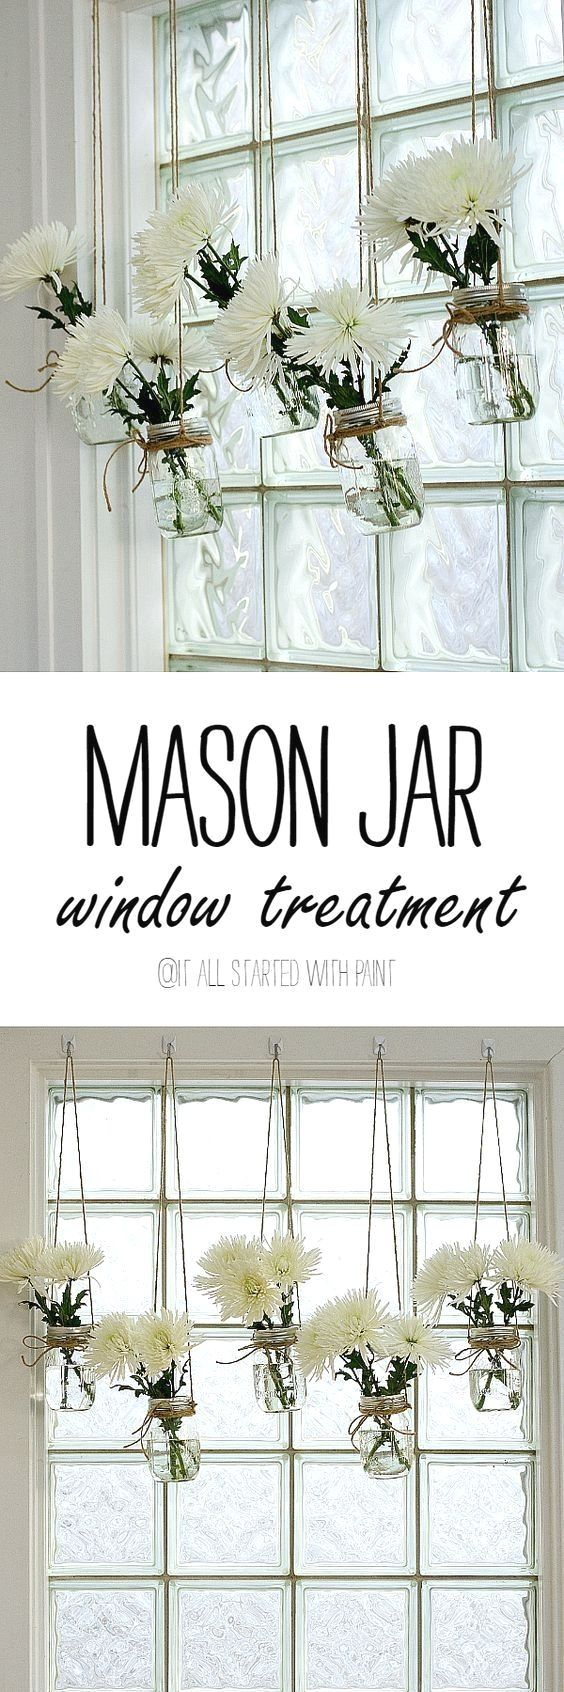 Kitchen window treatment ideas  shades for windows  check the pic for various window treatment